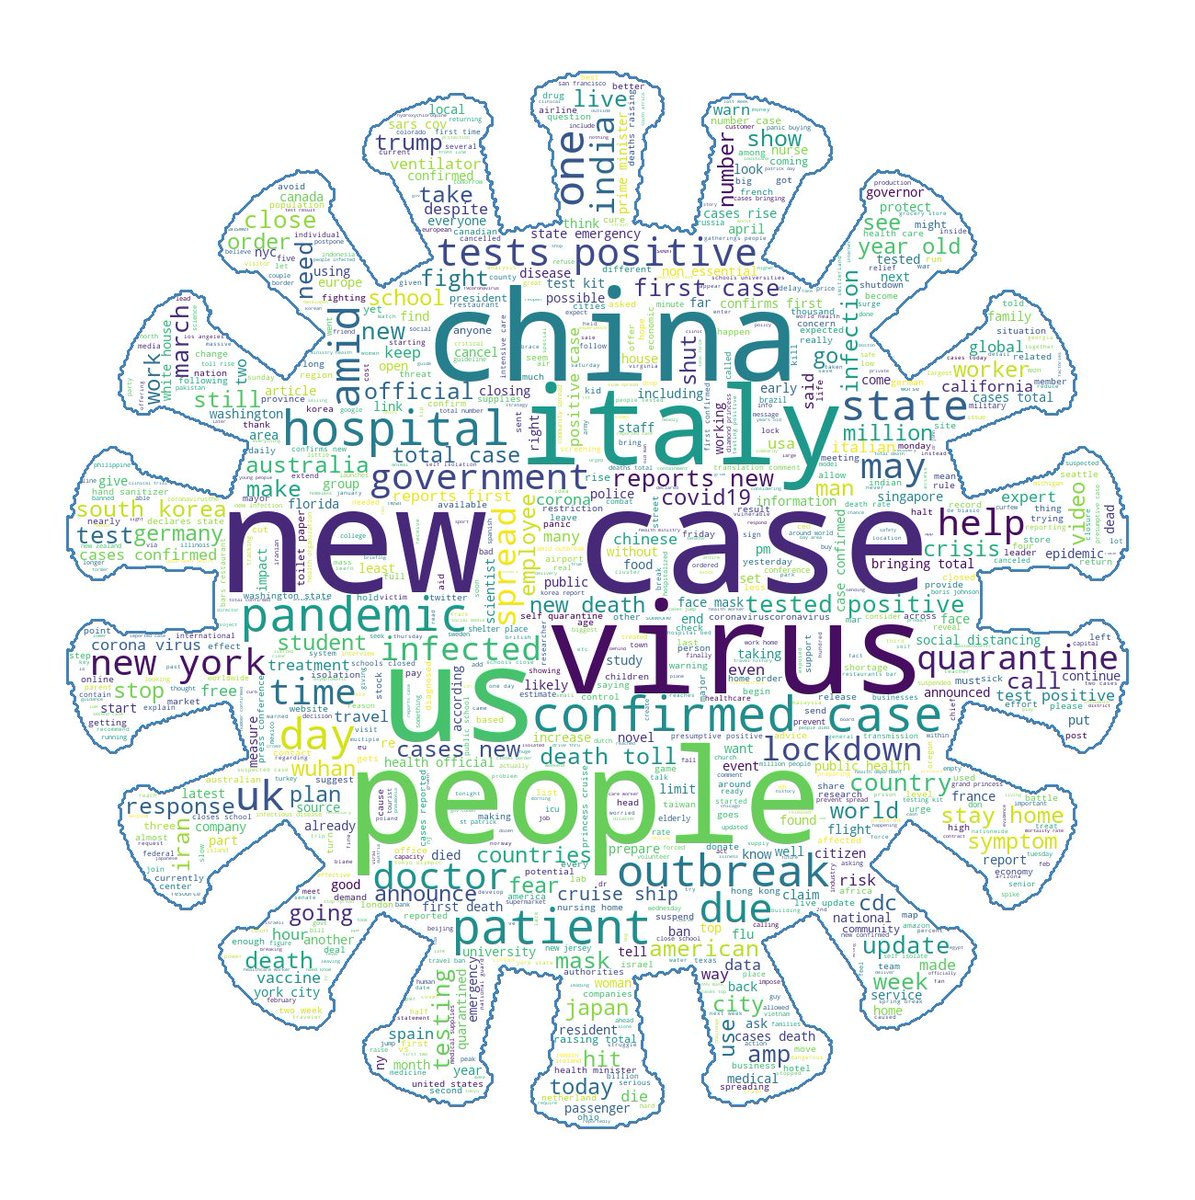 Gustavo Rodriguez On Twitter New Tutorial On How To Make Your Own Shaped Word Cloud With Python Jupyter Notebook And Mongodb This One Is Made With 75 Thousand News Titles Gathered From